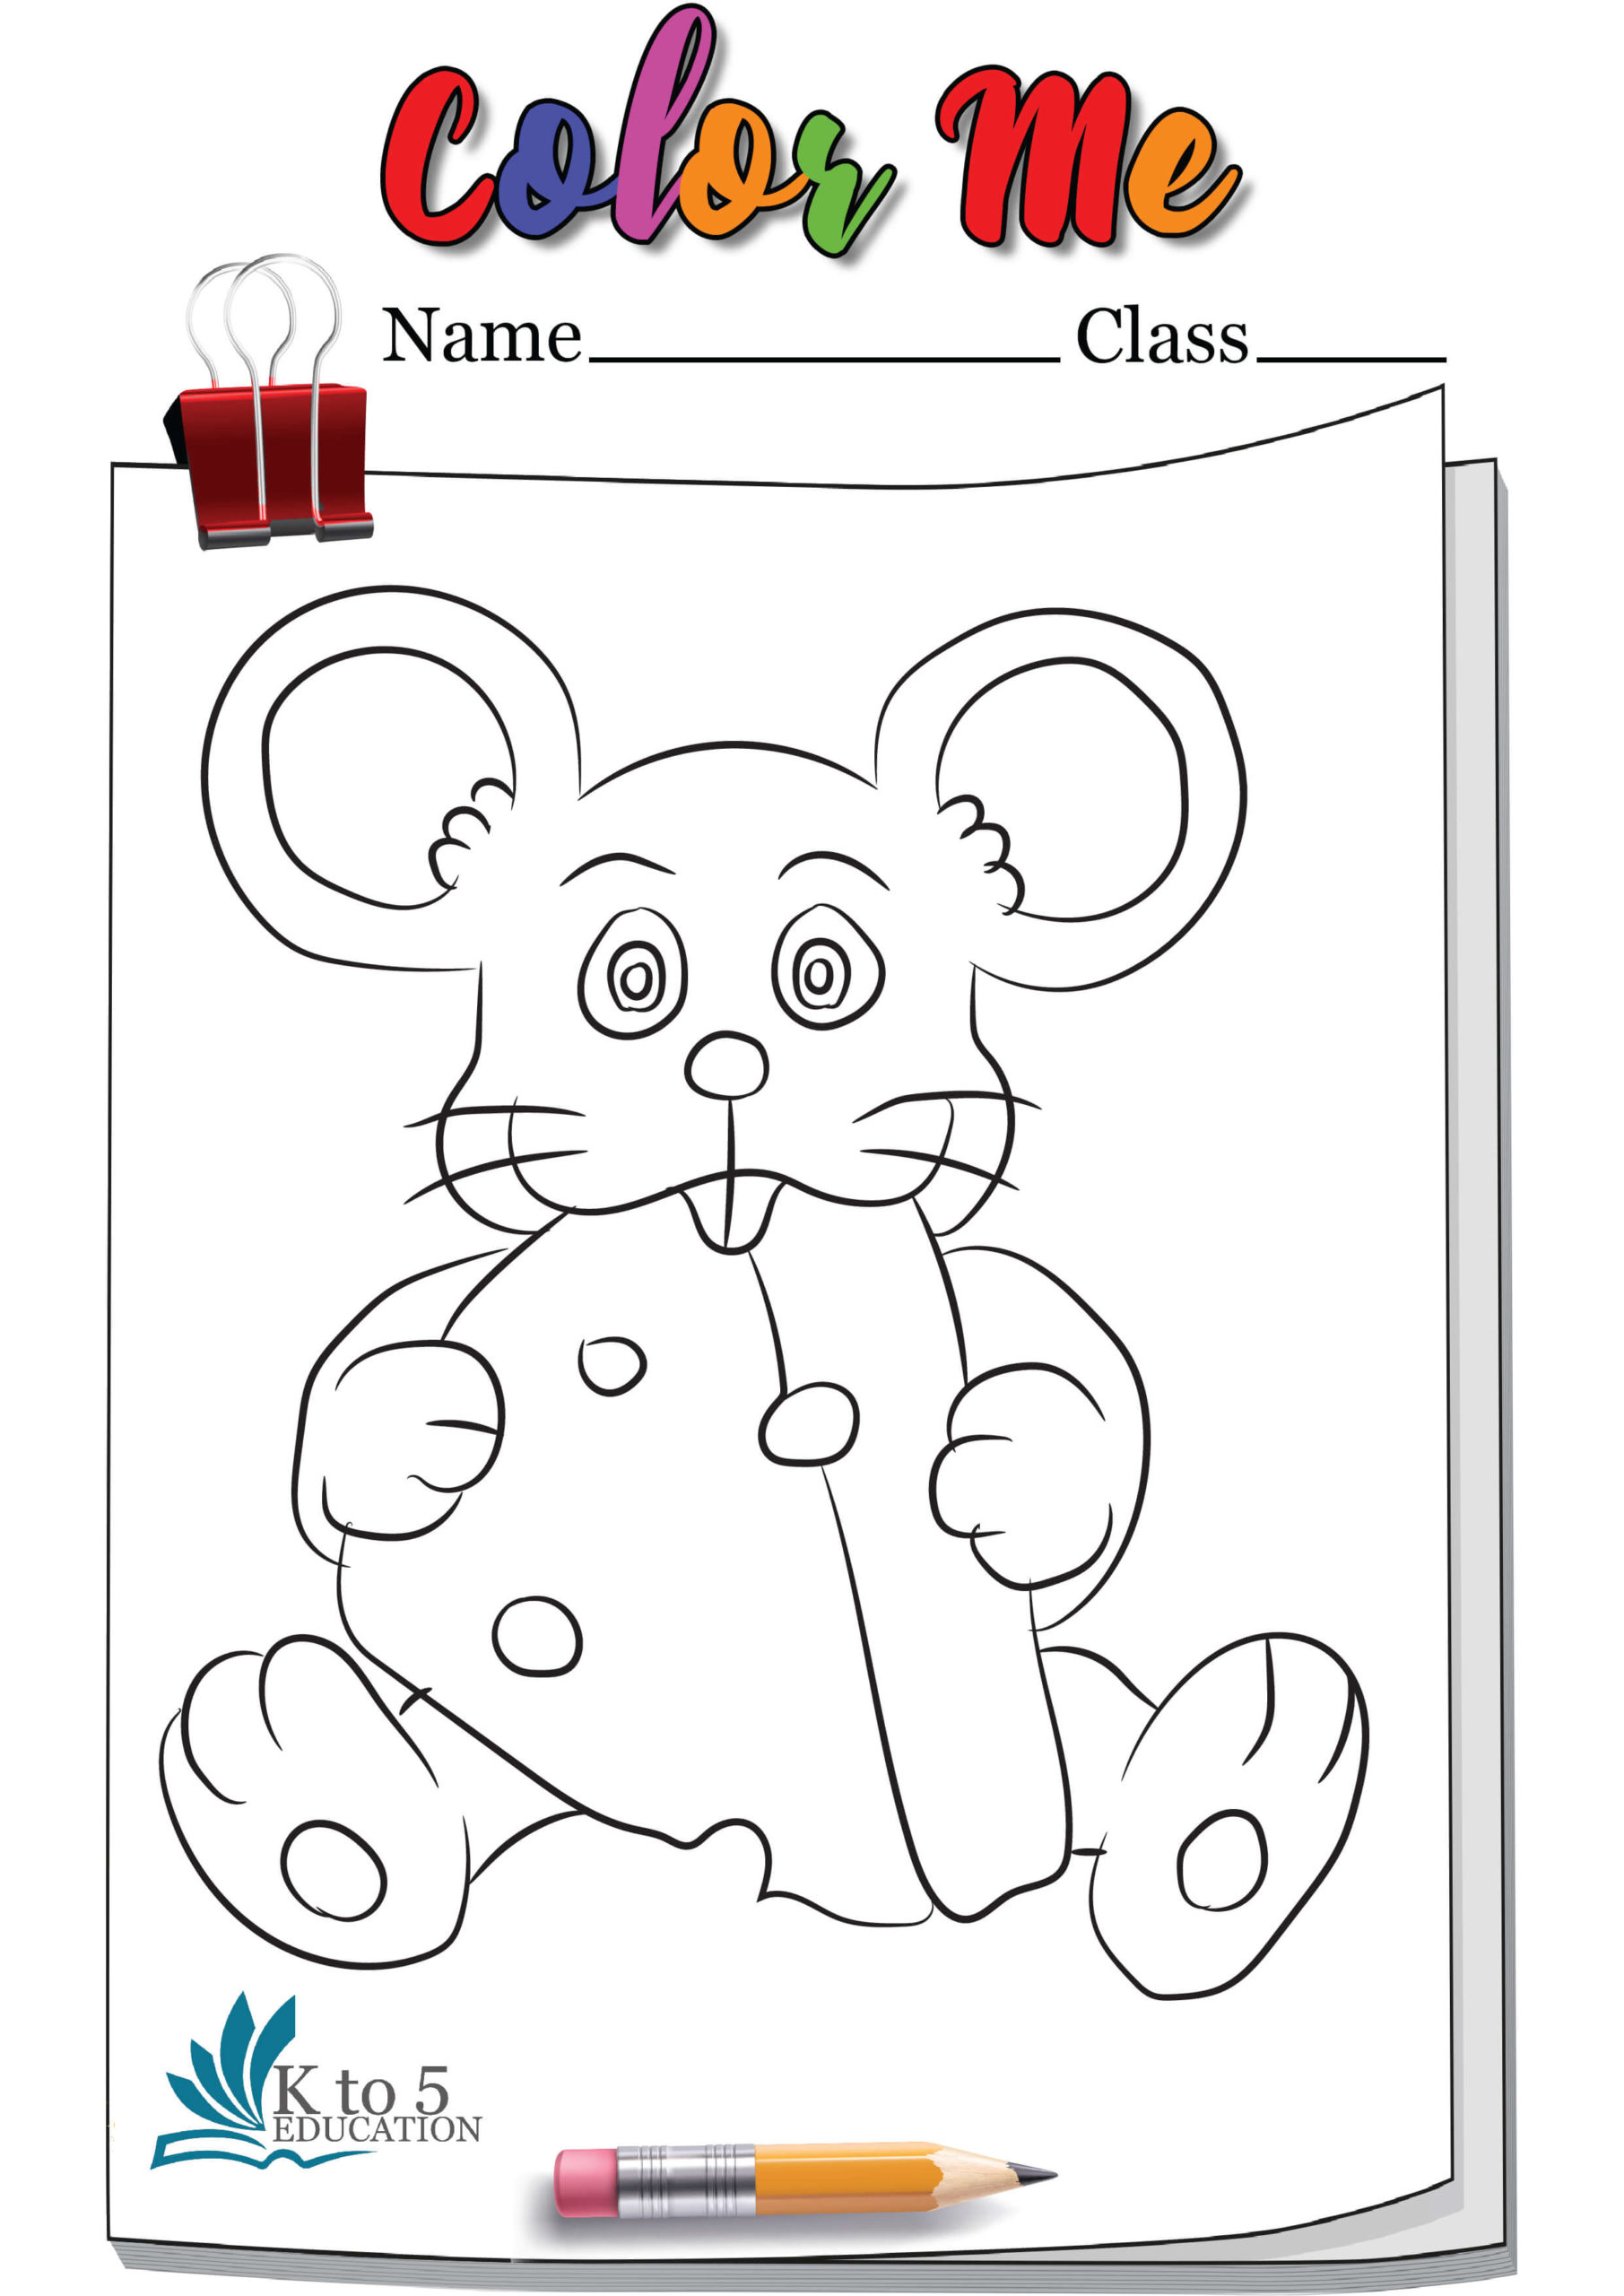 Rat Eating Cheese coloring page worksheet